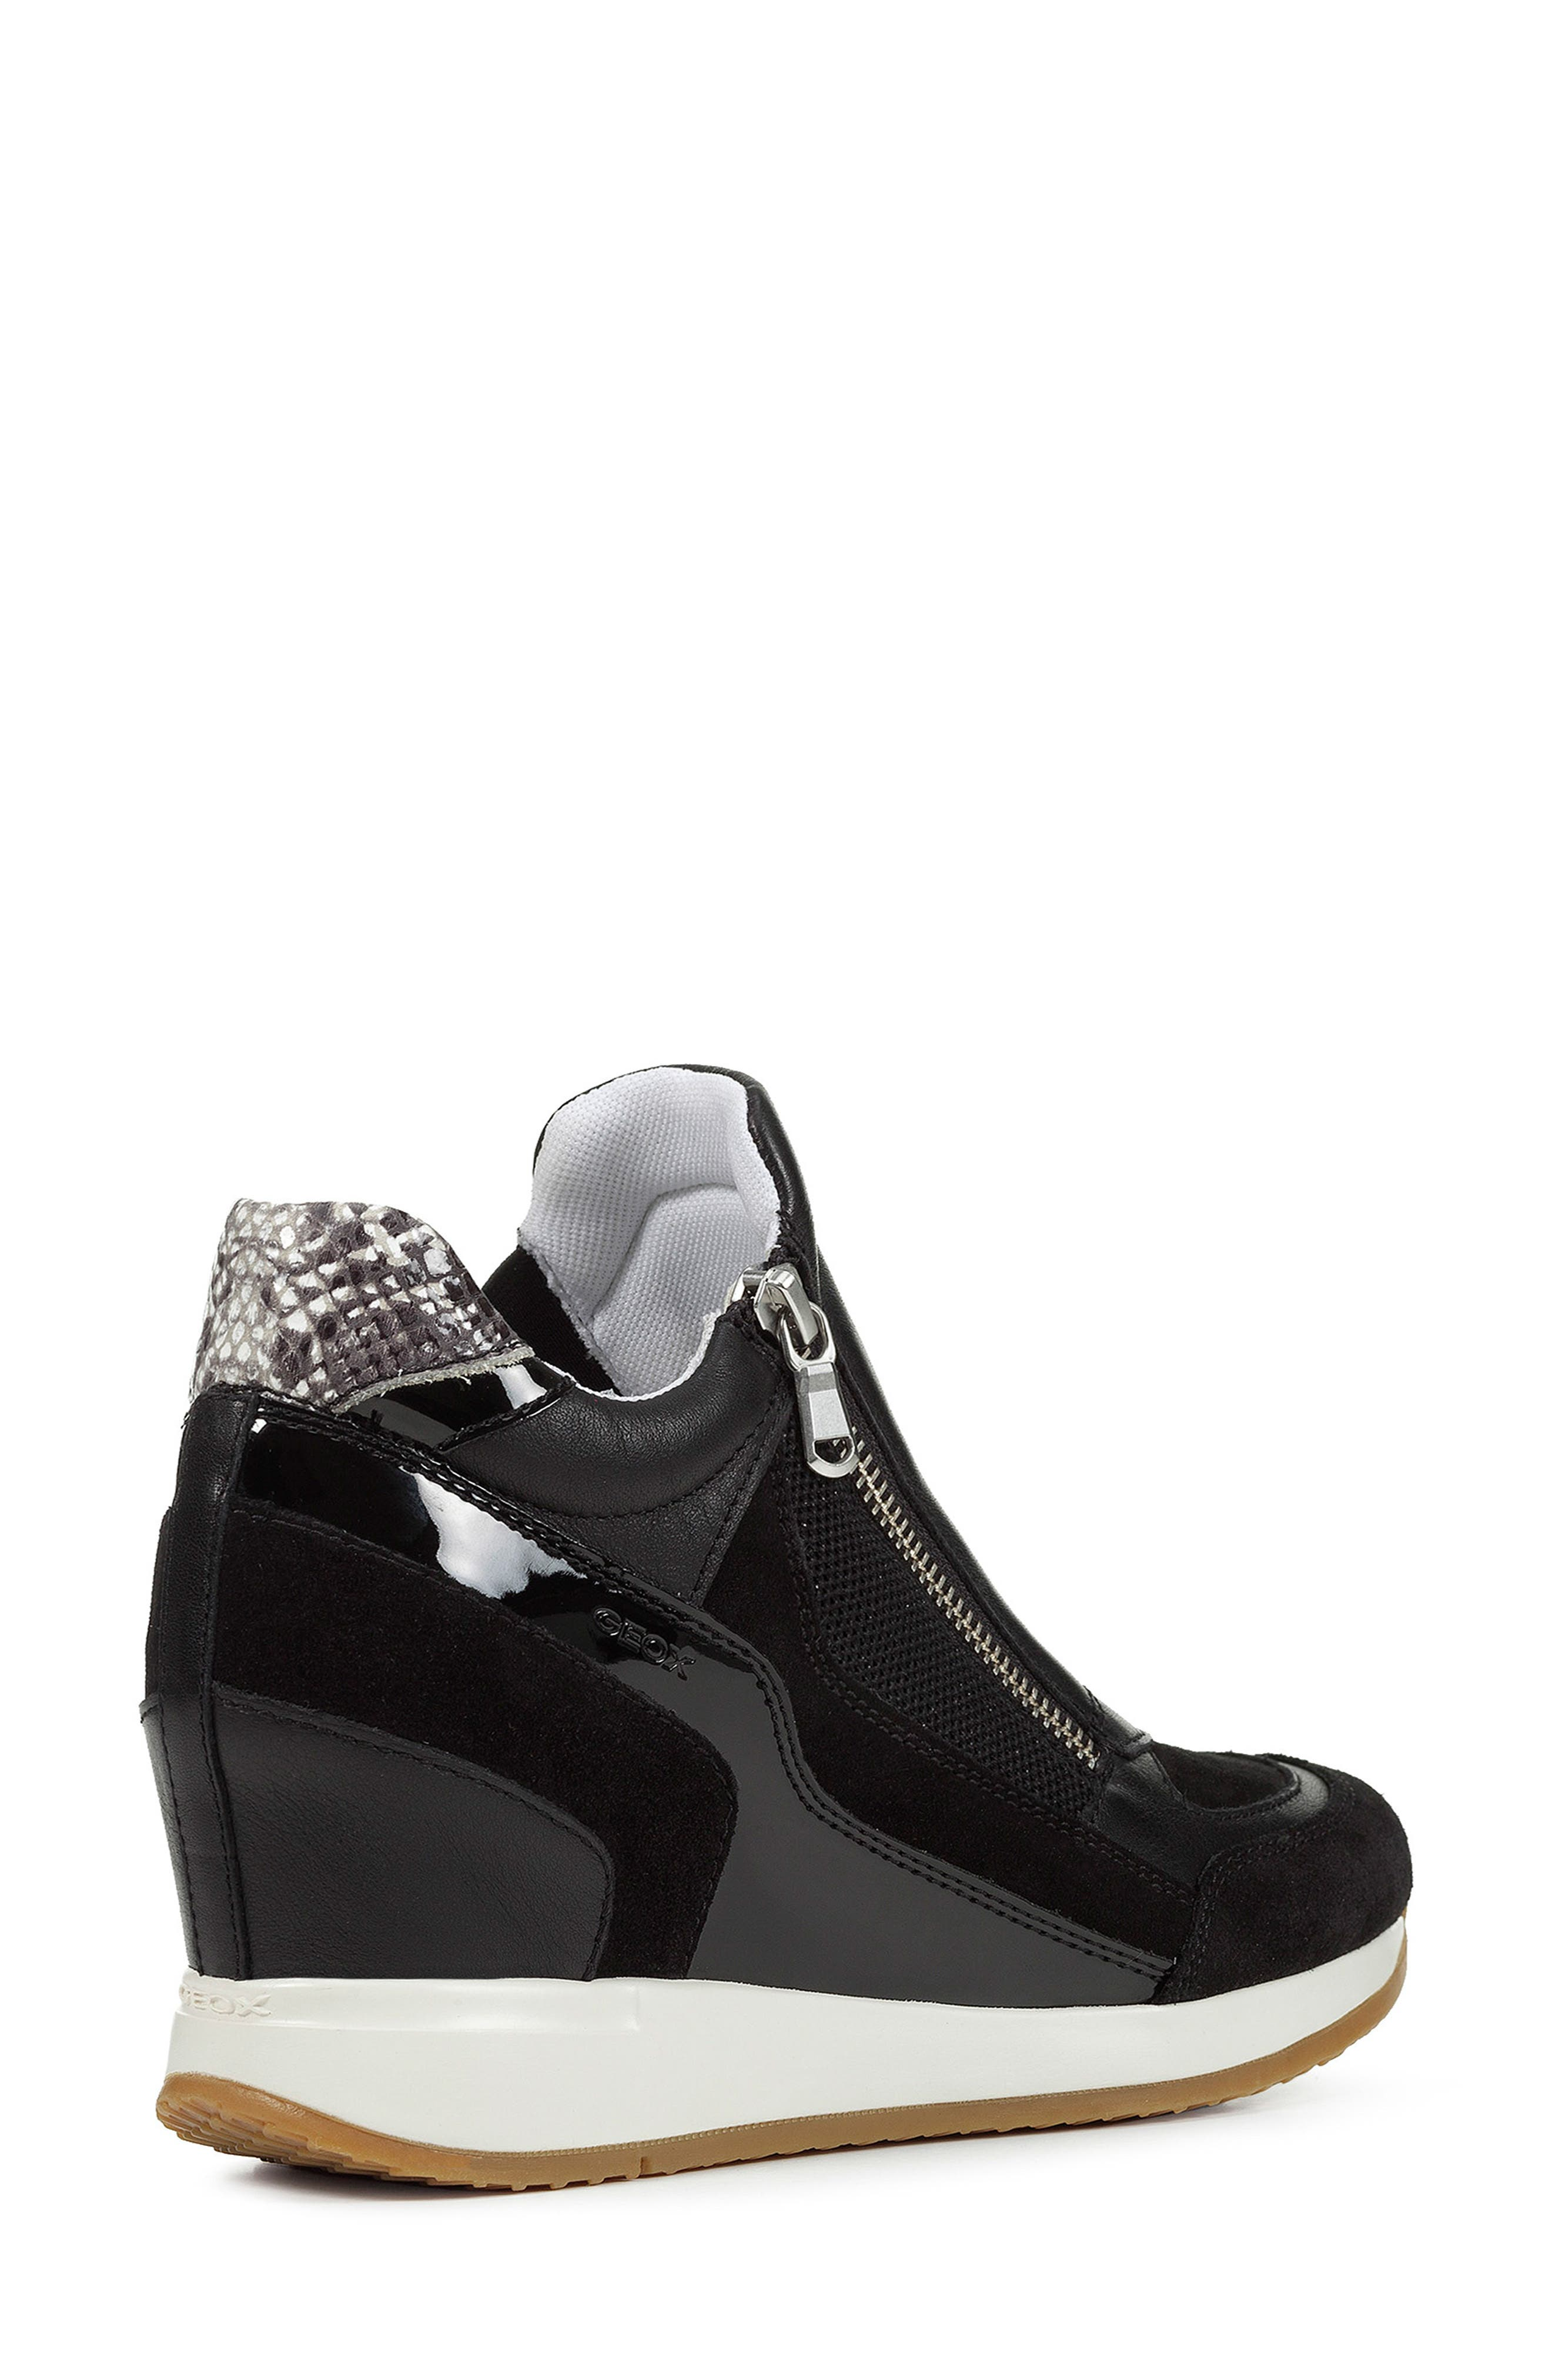 Nydame Wedge Sneaker,                             Alternate thumbnail 7, color,                             BLACK/ BLACK LEATHER